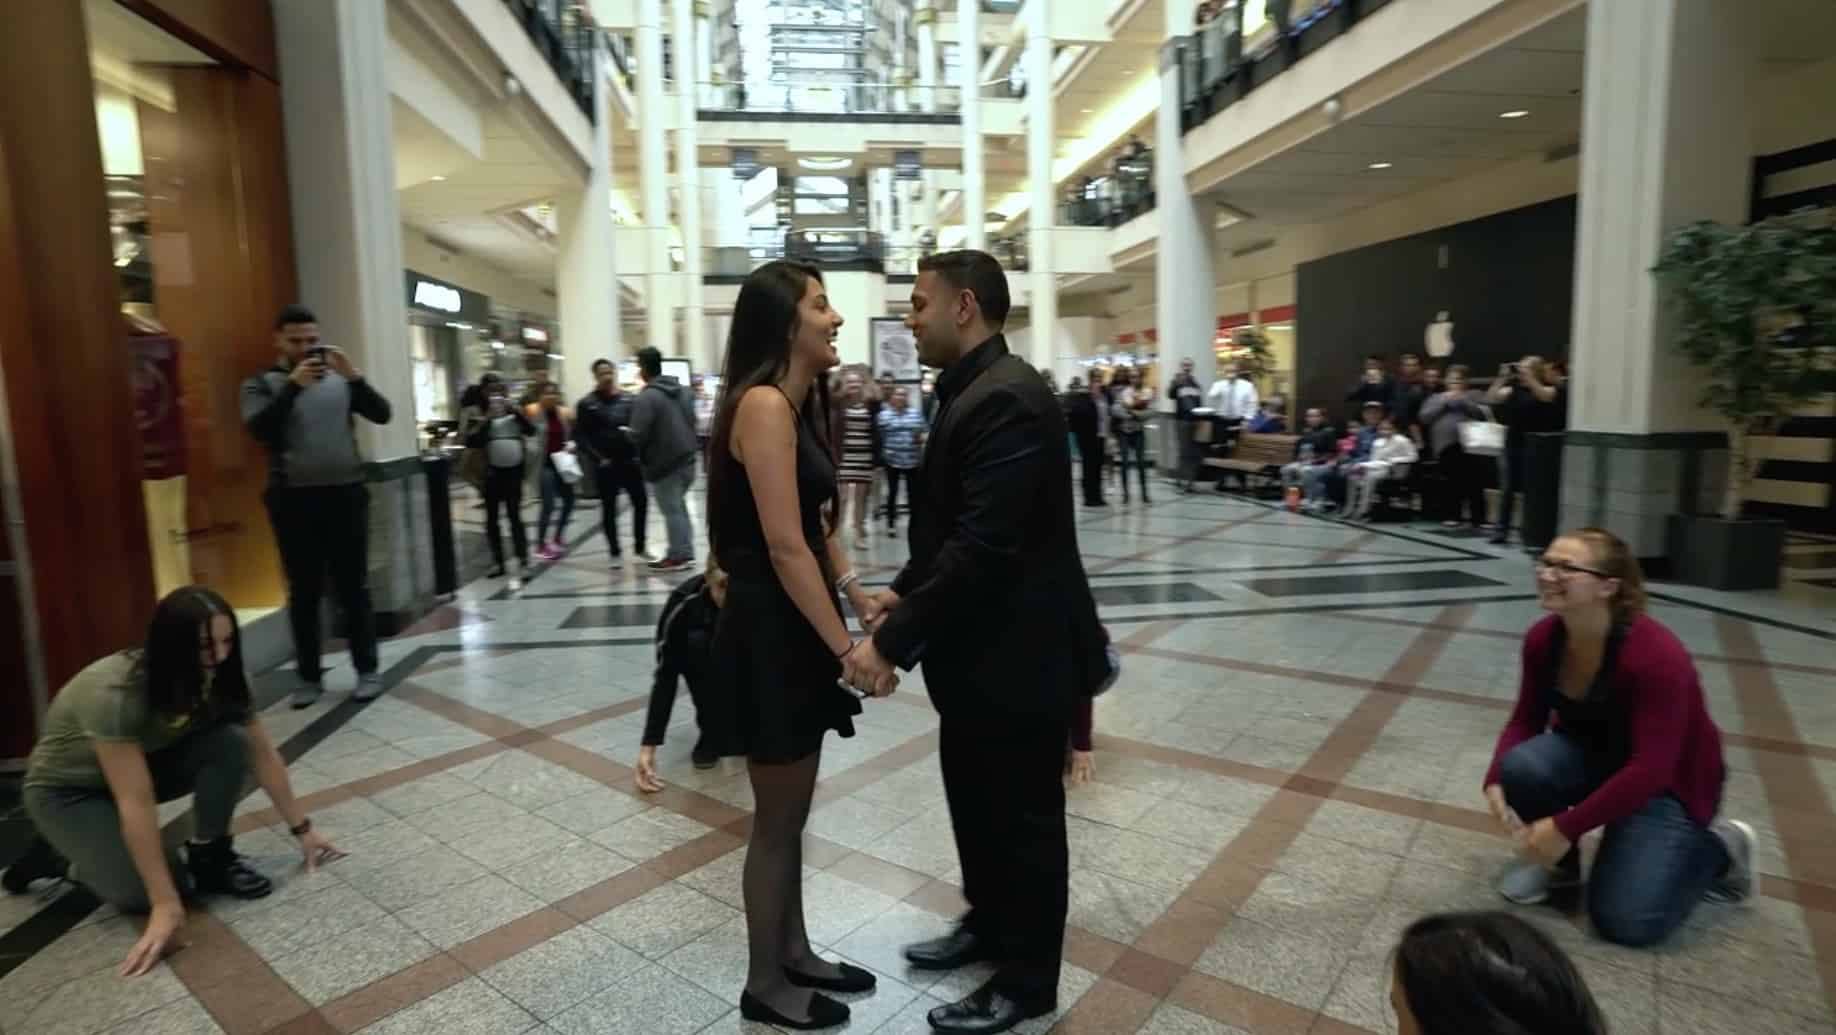 boston-flash-mob-proposal-3.jpg